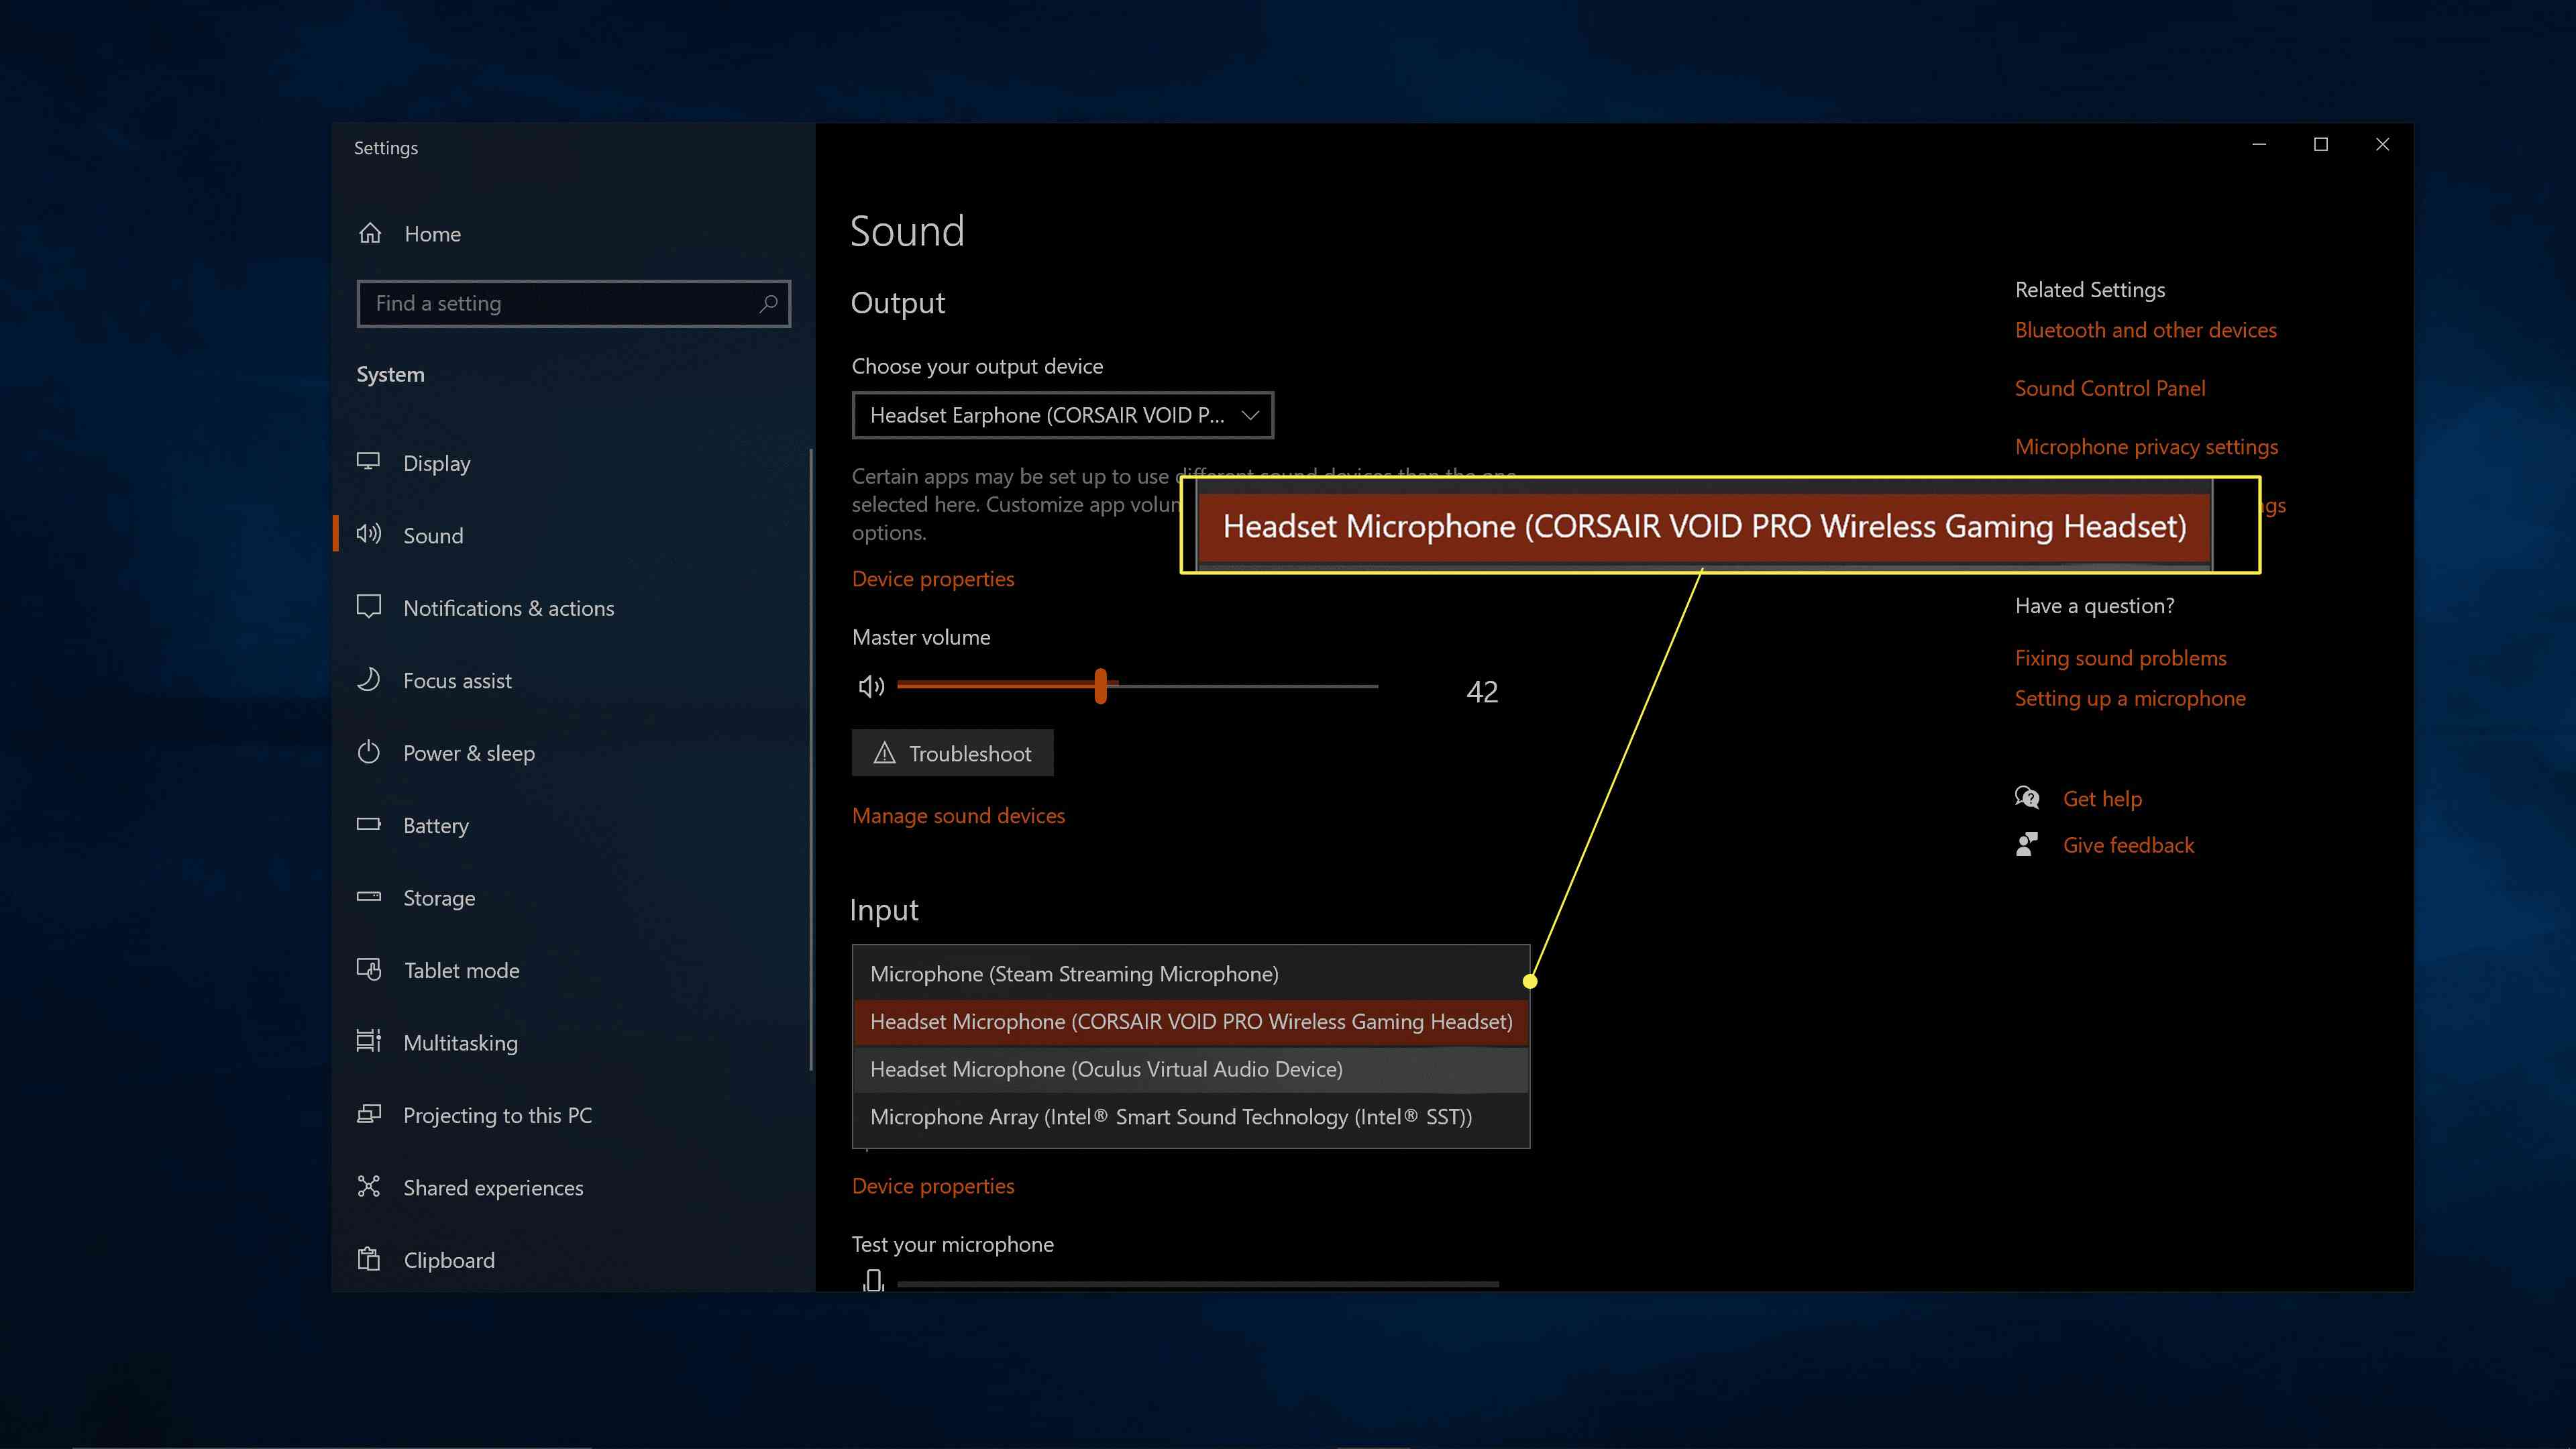 Headset Microphone (Oculus Virtual Audio Device) highlighted in Windows sound settings.